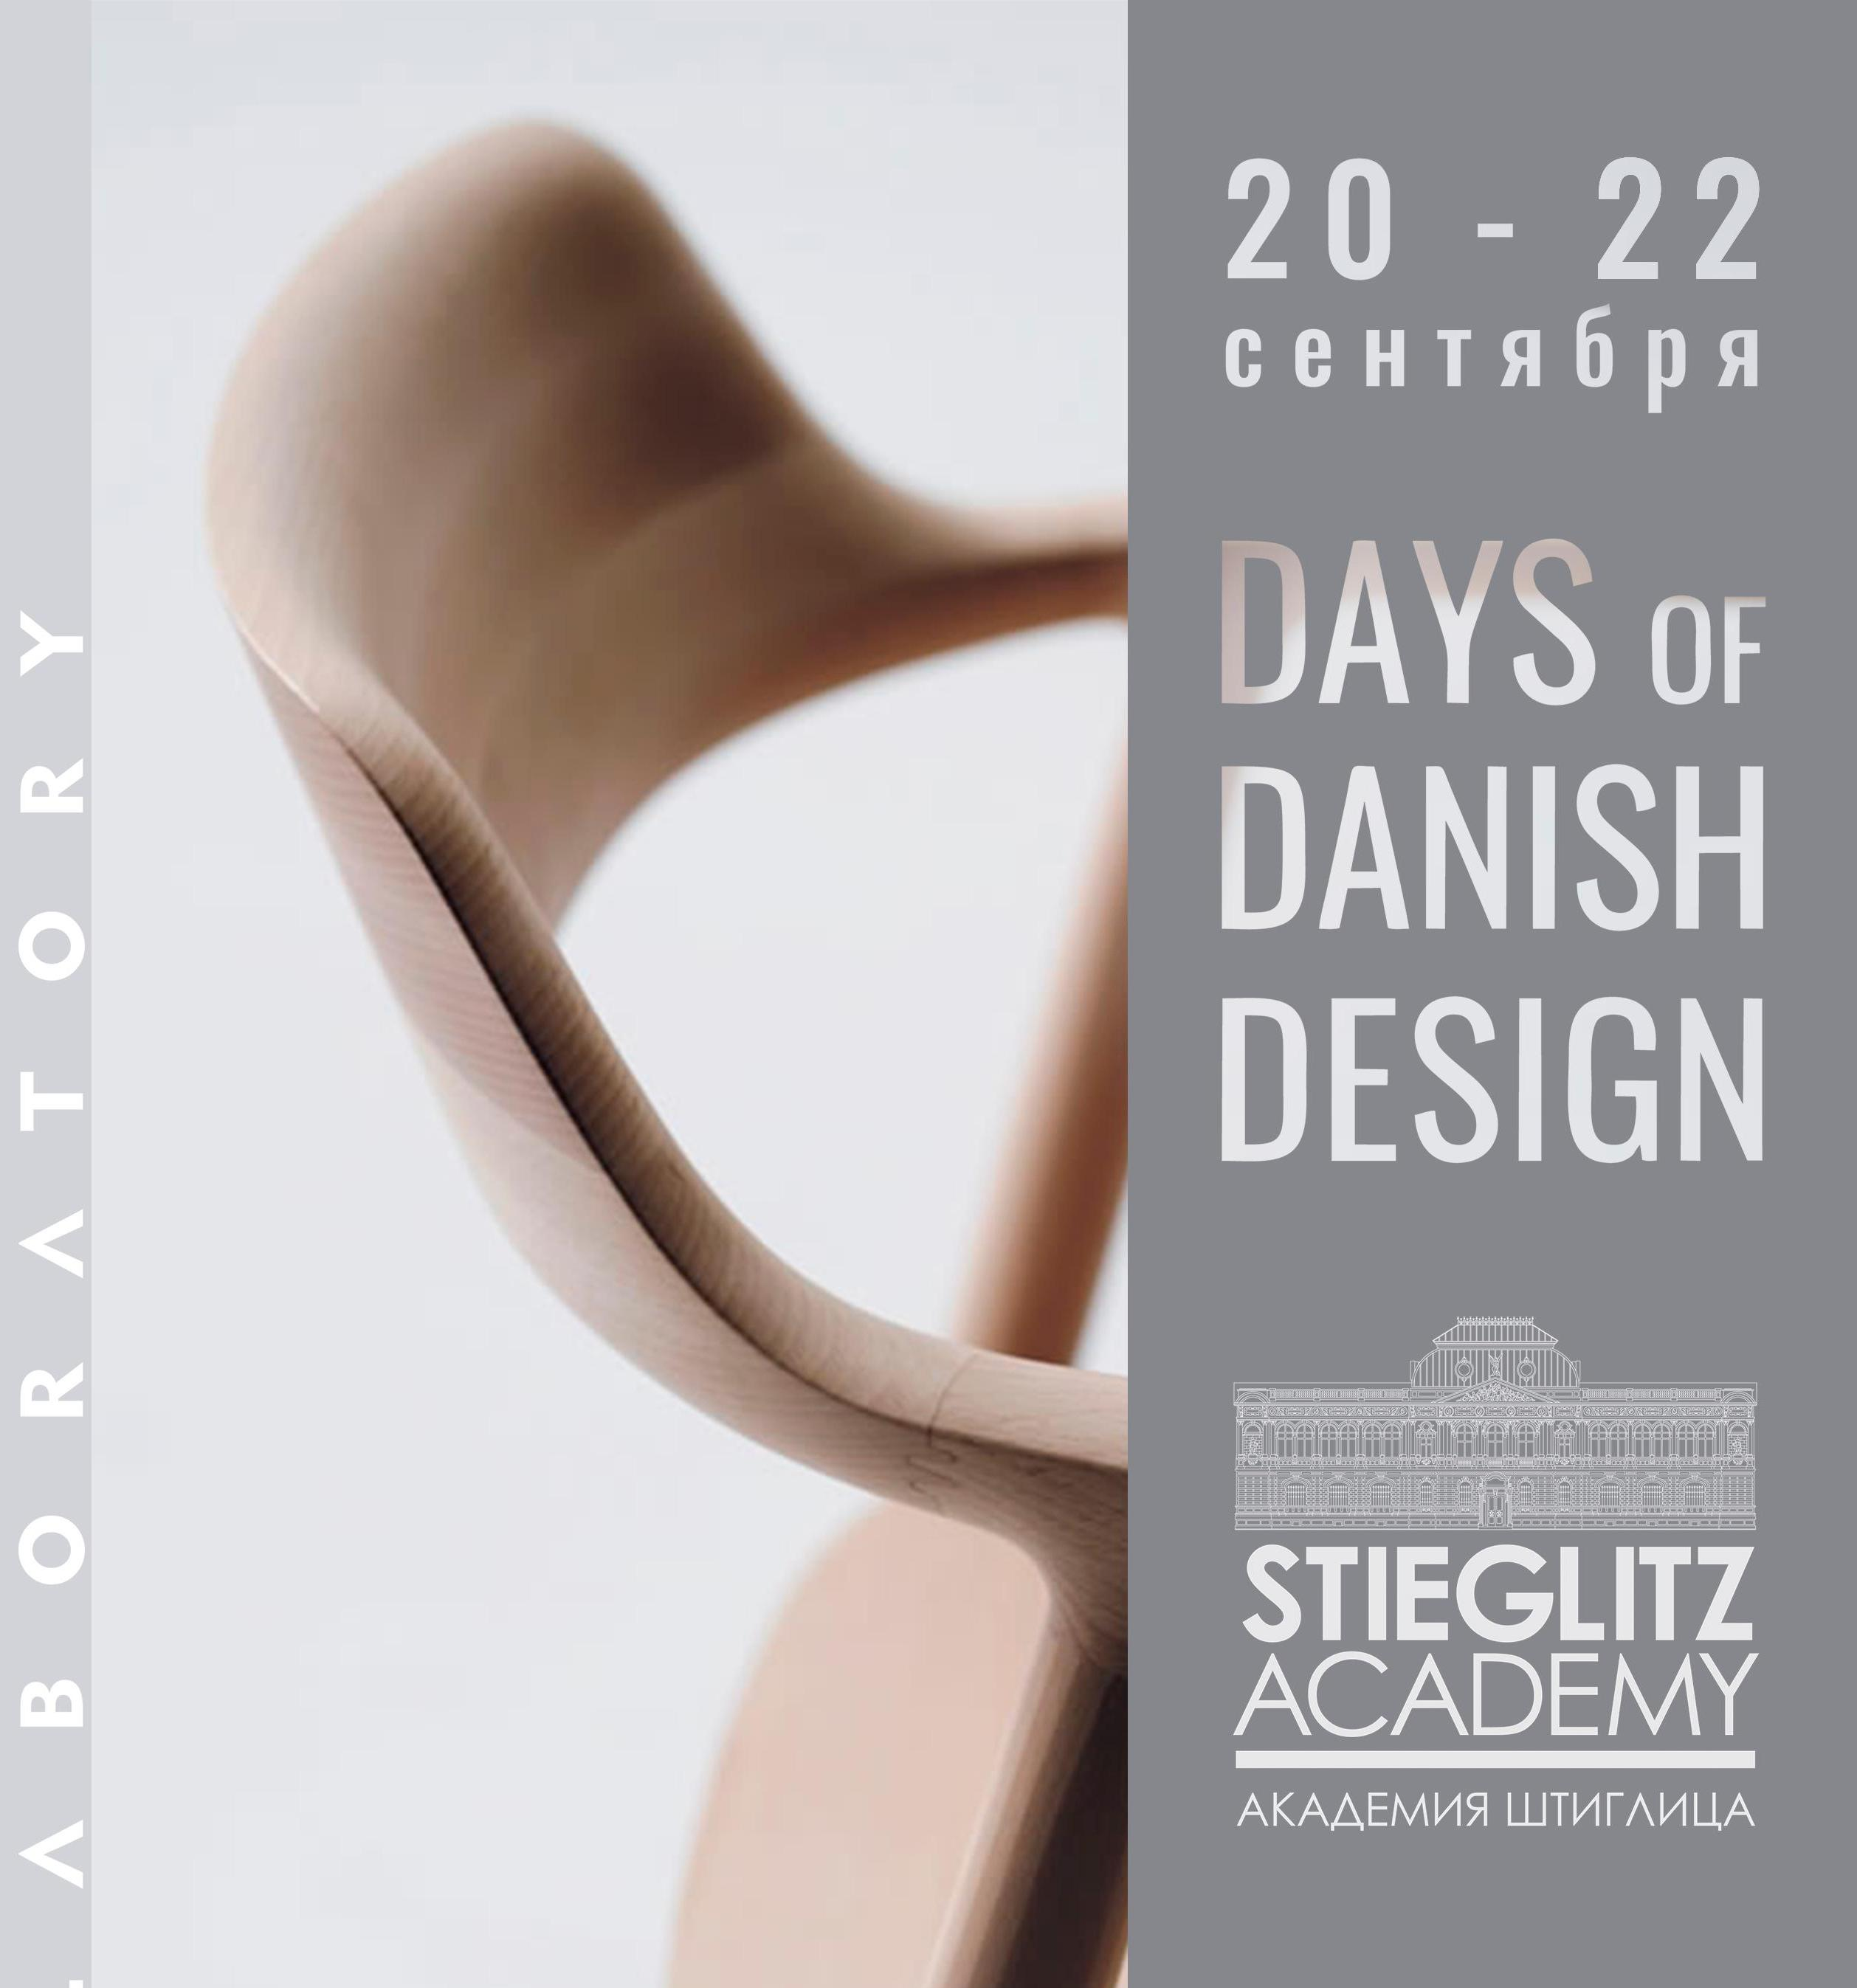 Days of Danish Design